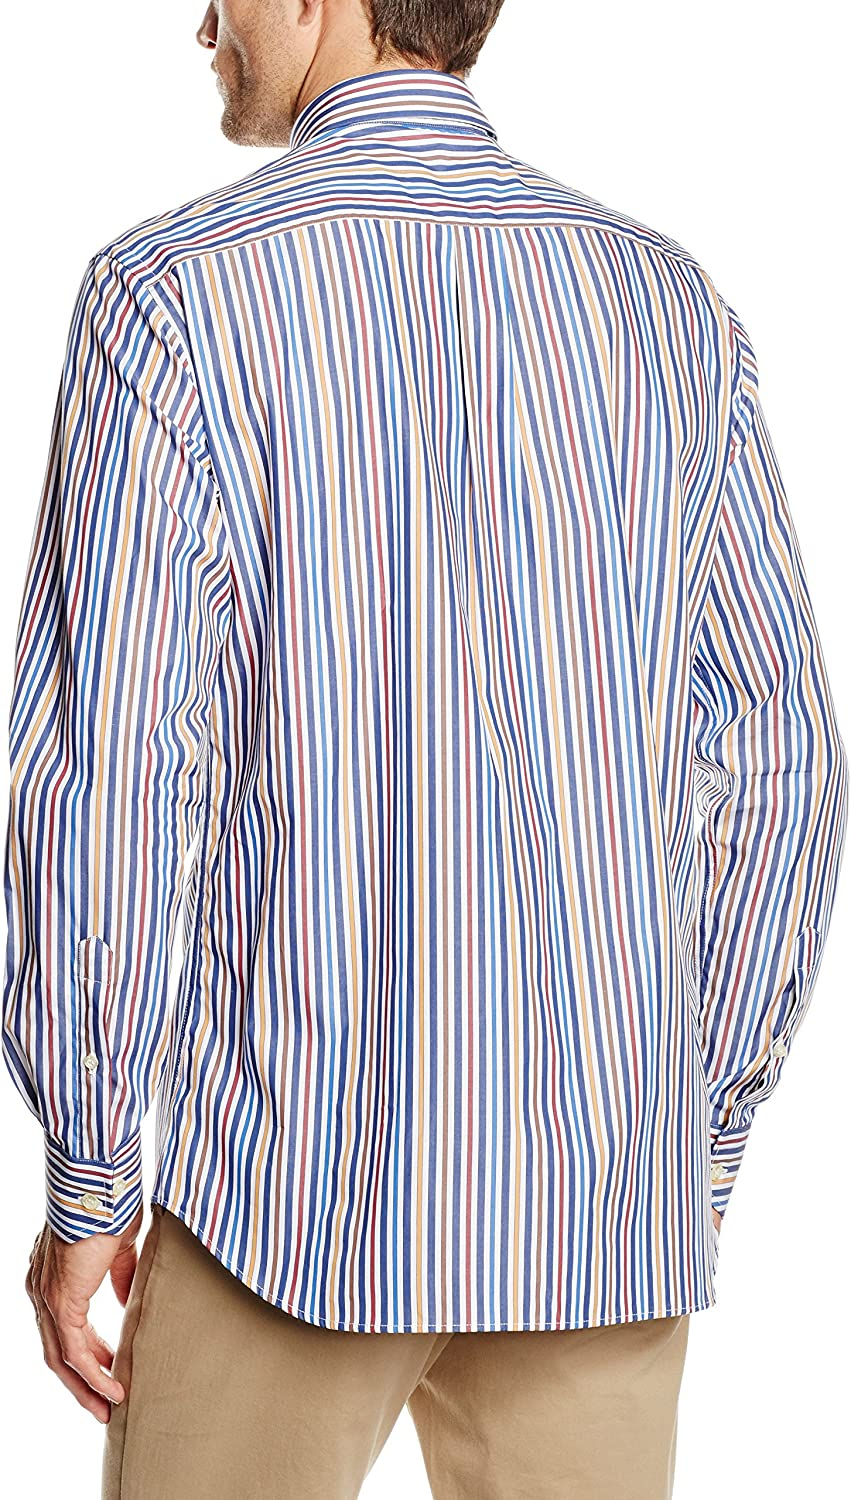 Mirto HAPPY BOTON - Camisa Casual de manga larga para hombre, multicolor, talla 37: Amazon.es: Ropa y accesorios